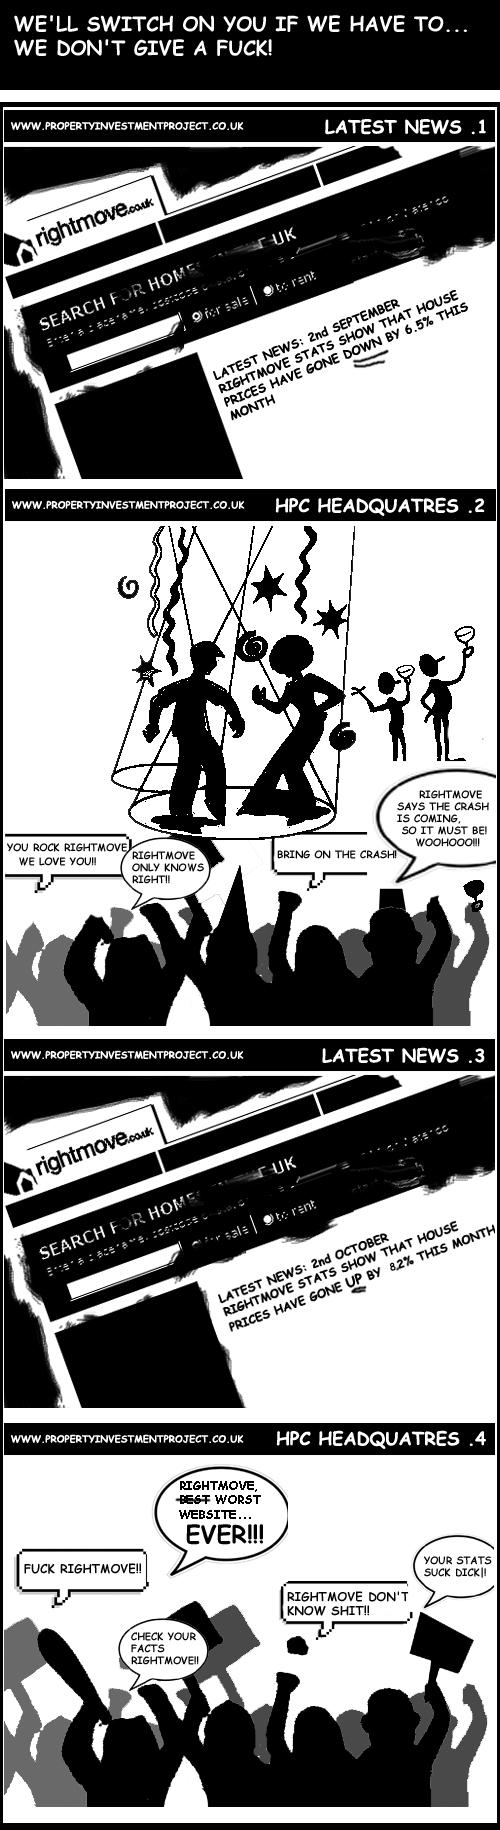 House Price Crash Mentality Comic 2